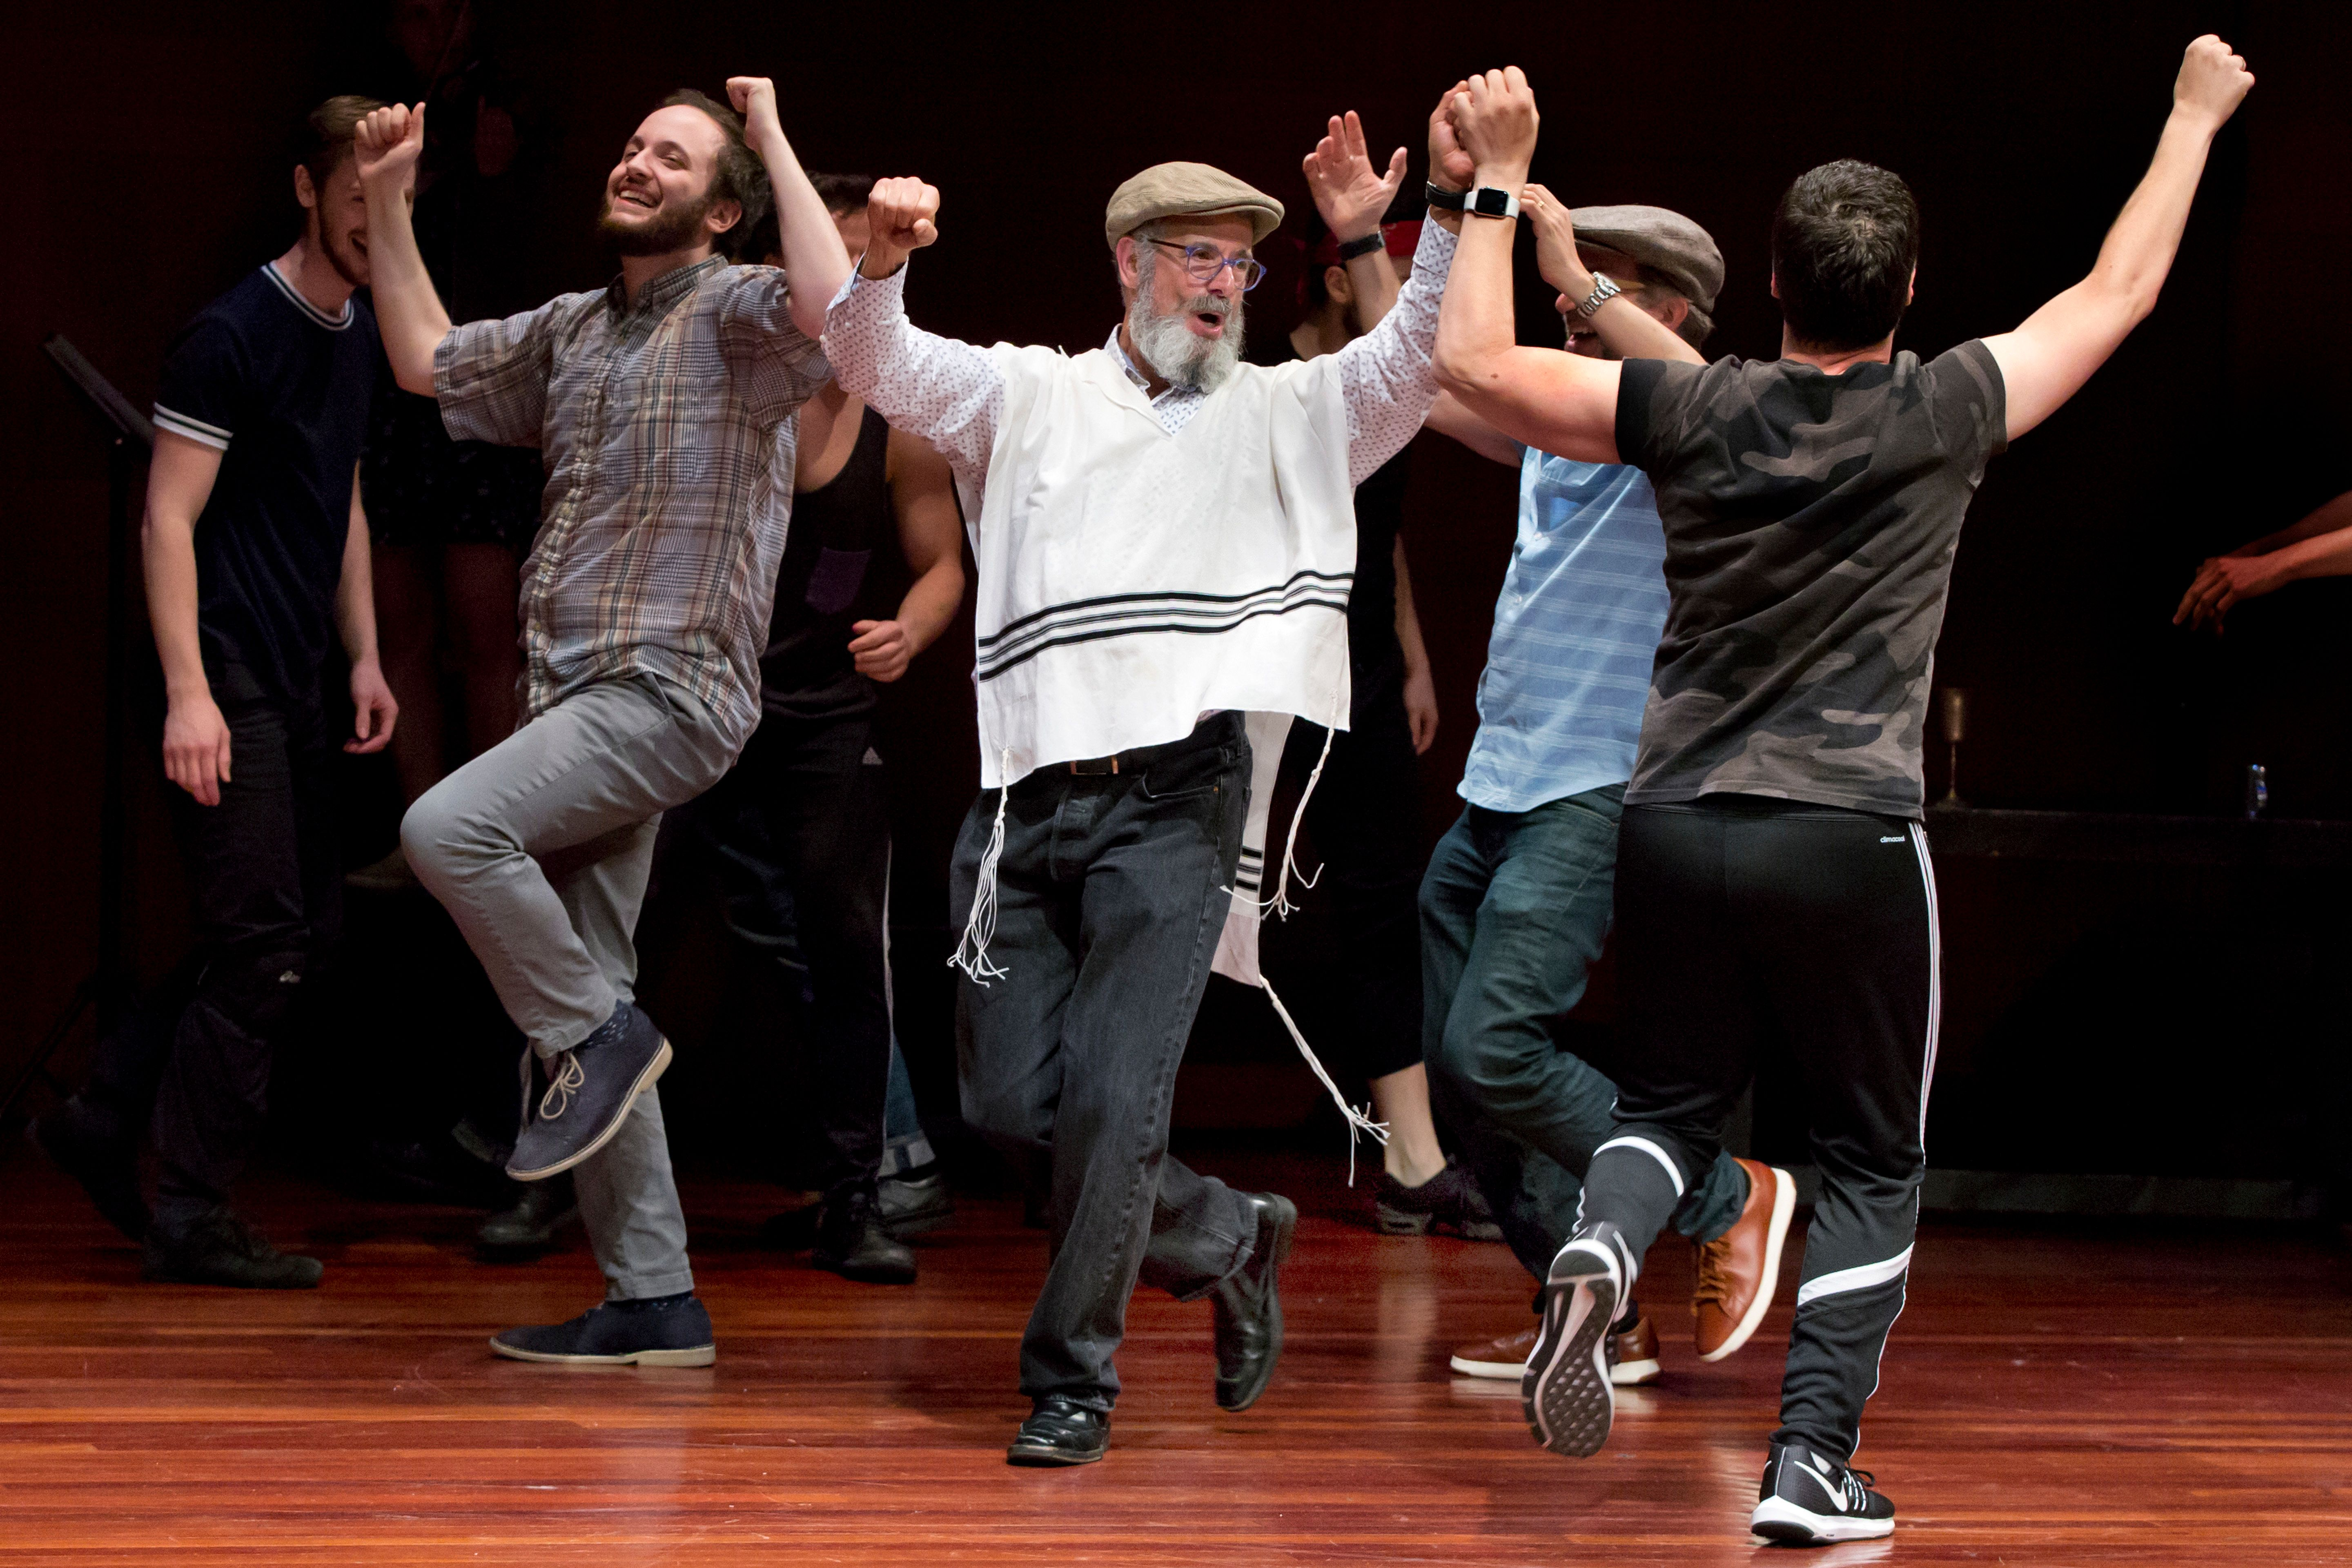 """In this Tuesday, June 19, 2018, photo, Steven Skybell, center, as Tevye, rehearses with the National Yiddish Theatre Folksbiene cast of a Yiddish-language production of """"Fiddler on the Roof,"""" at the at the Museum of Jewish Heritage, in New York. (AP Photo/Richard Drew)"""